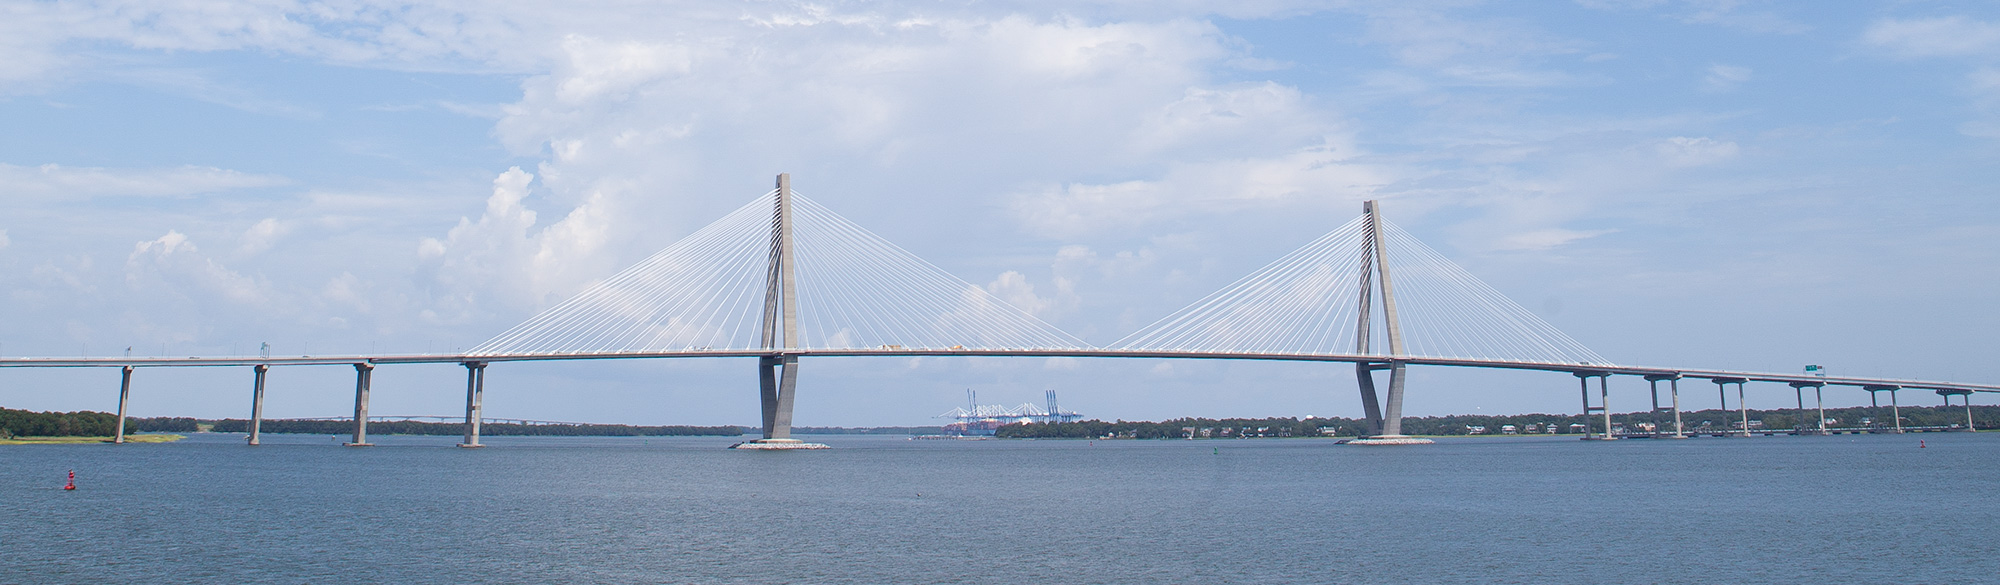 Cycling across the Ravenel Bridge